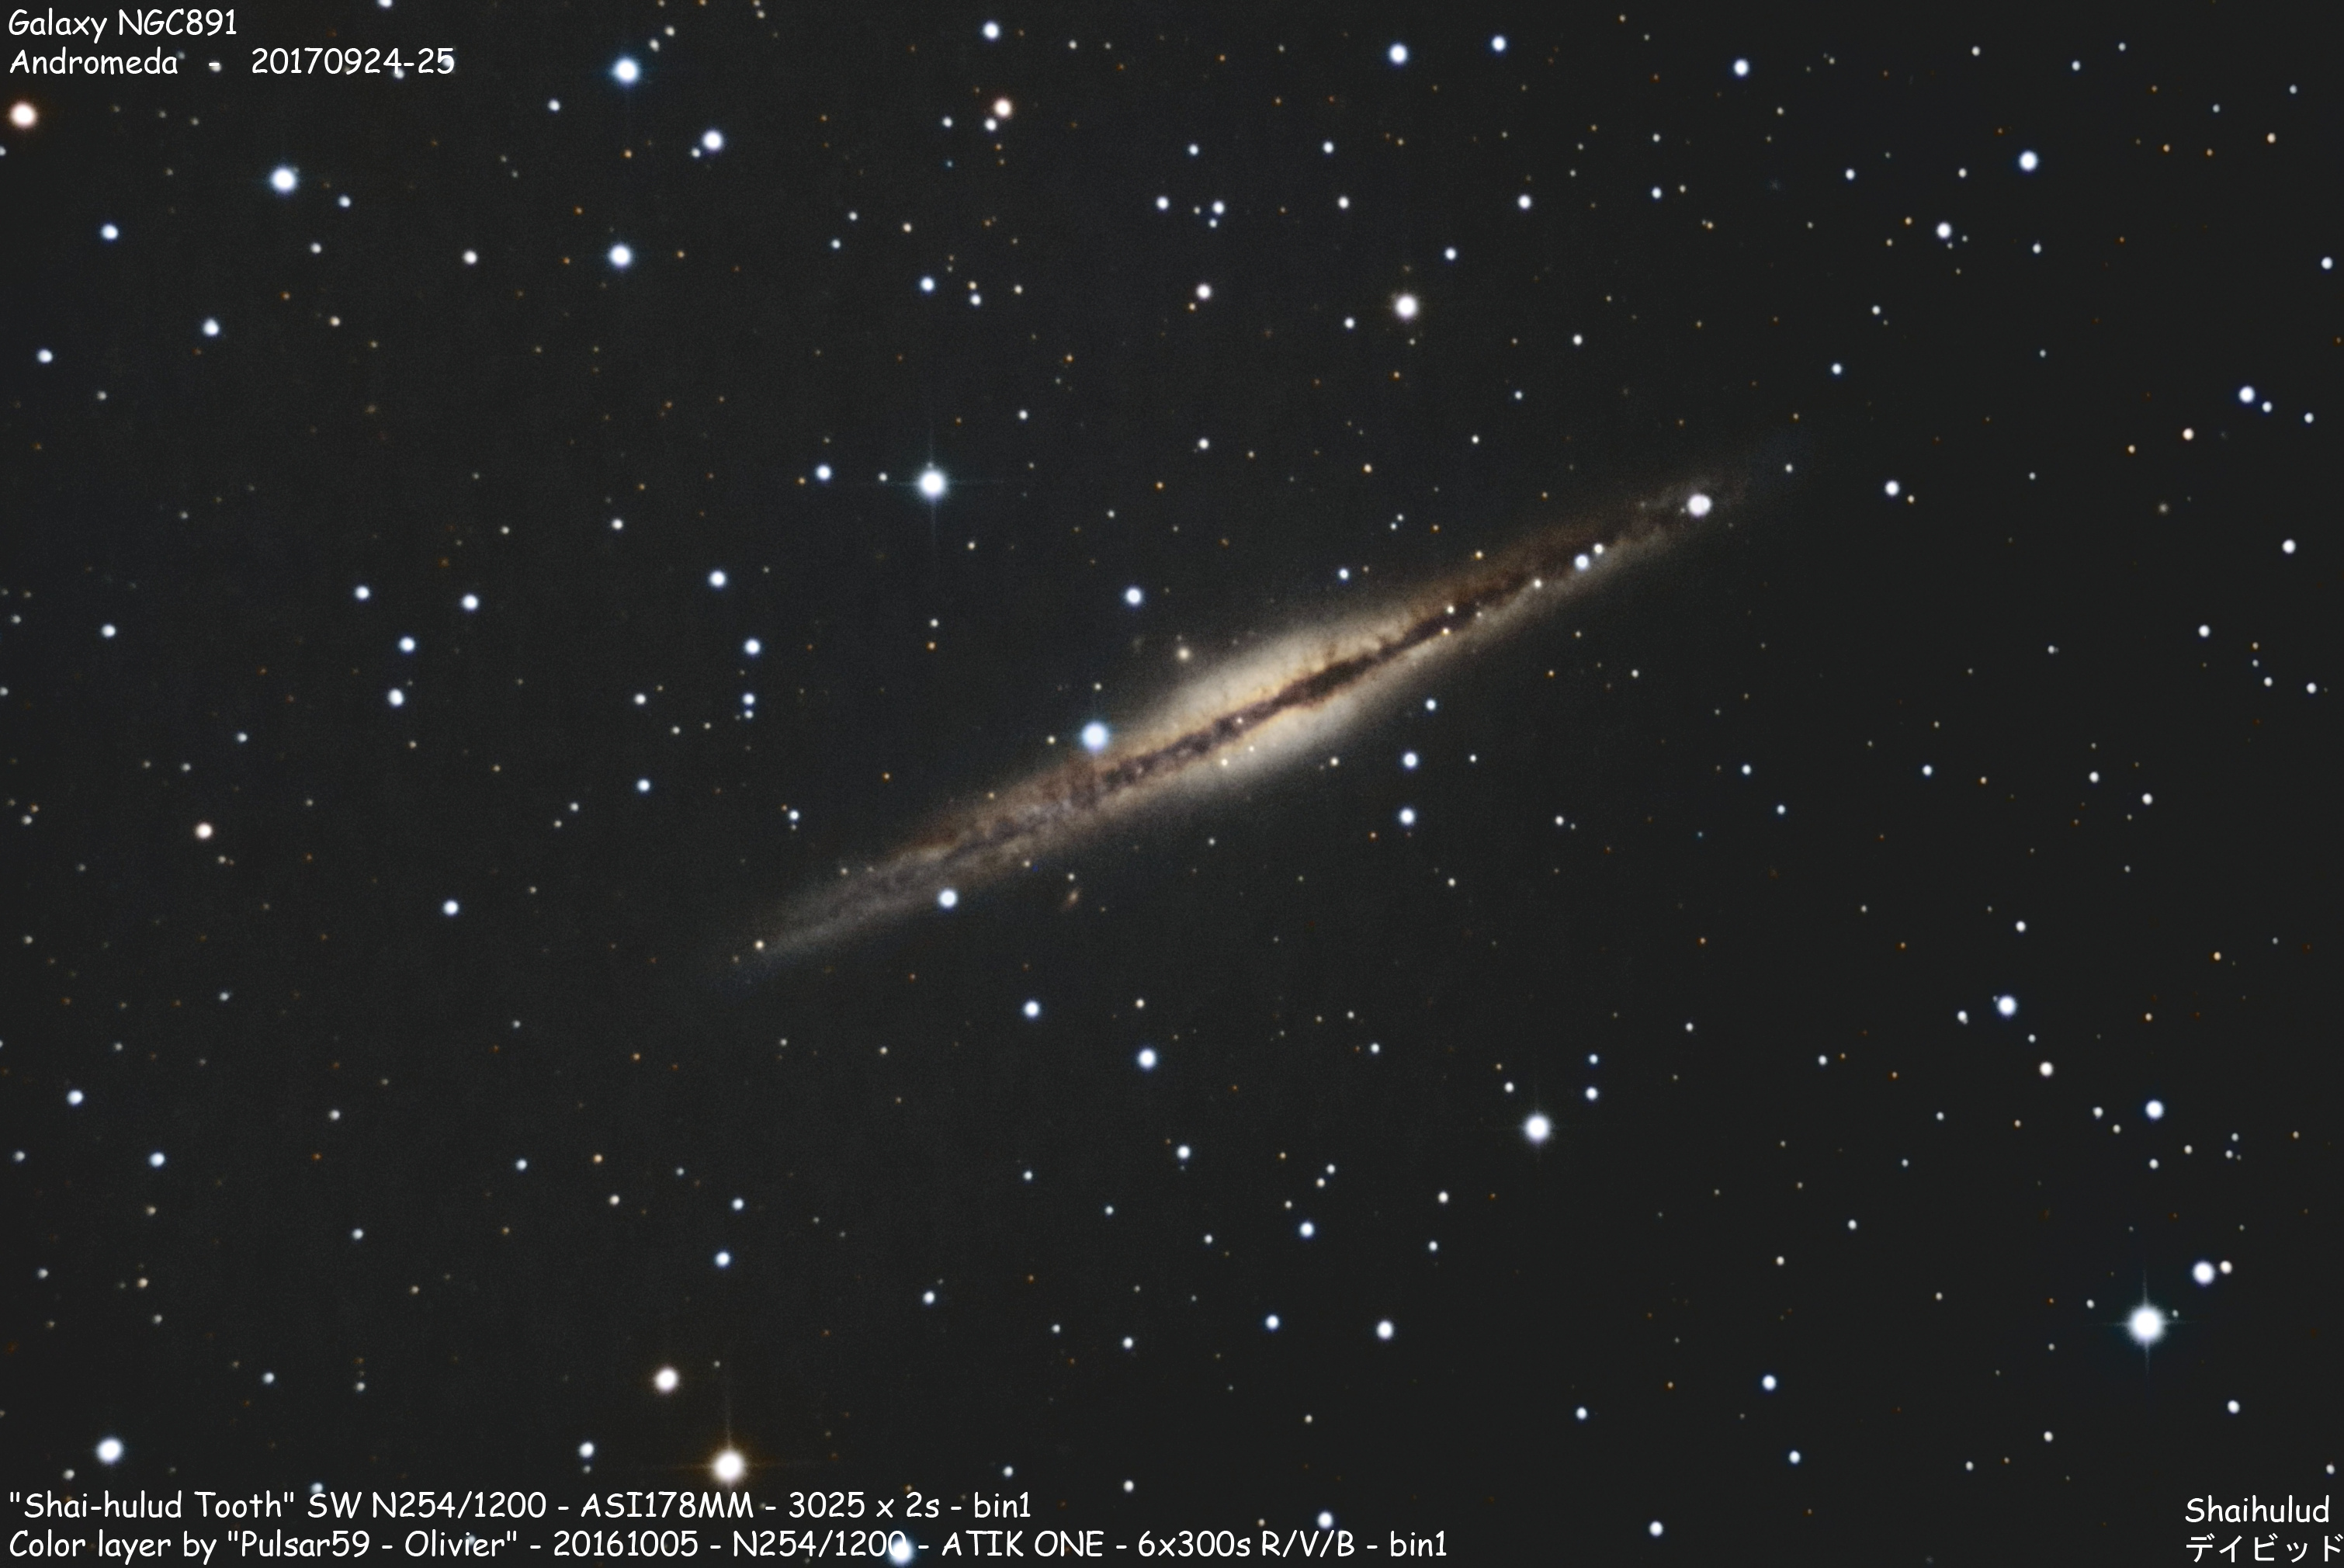 NGC 891 (Shot from the city center of Reims)